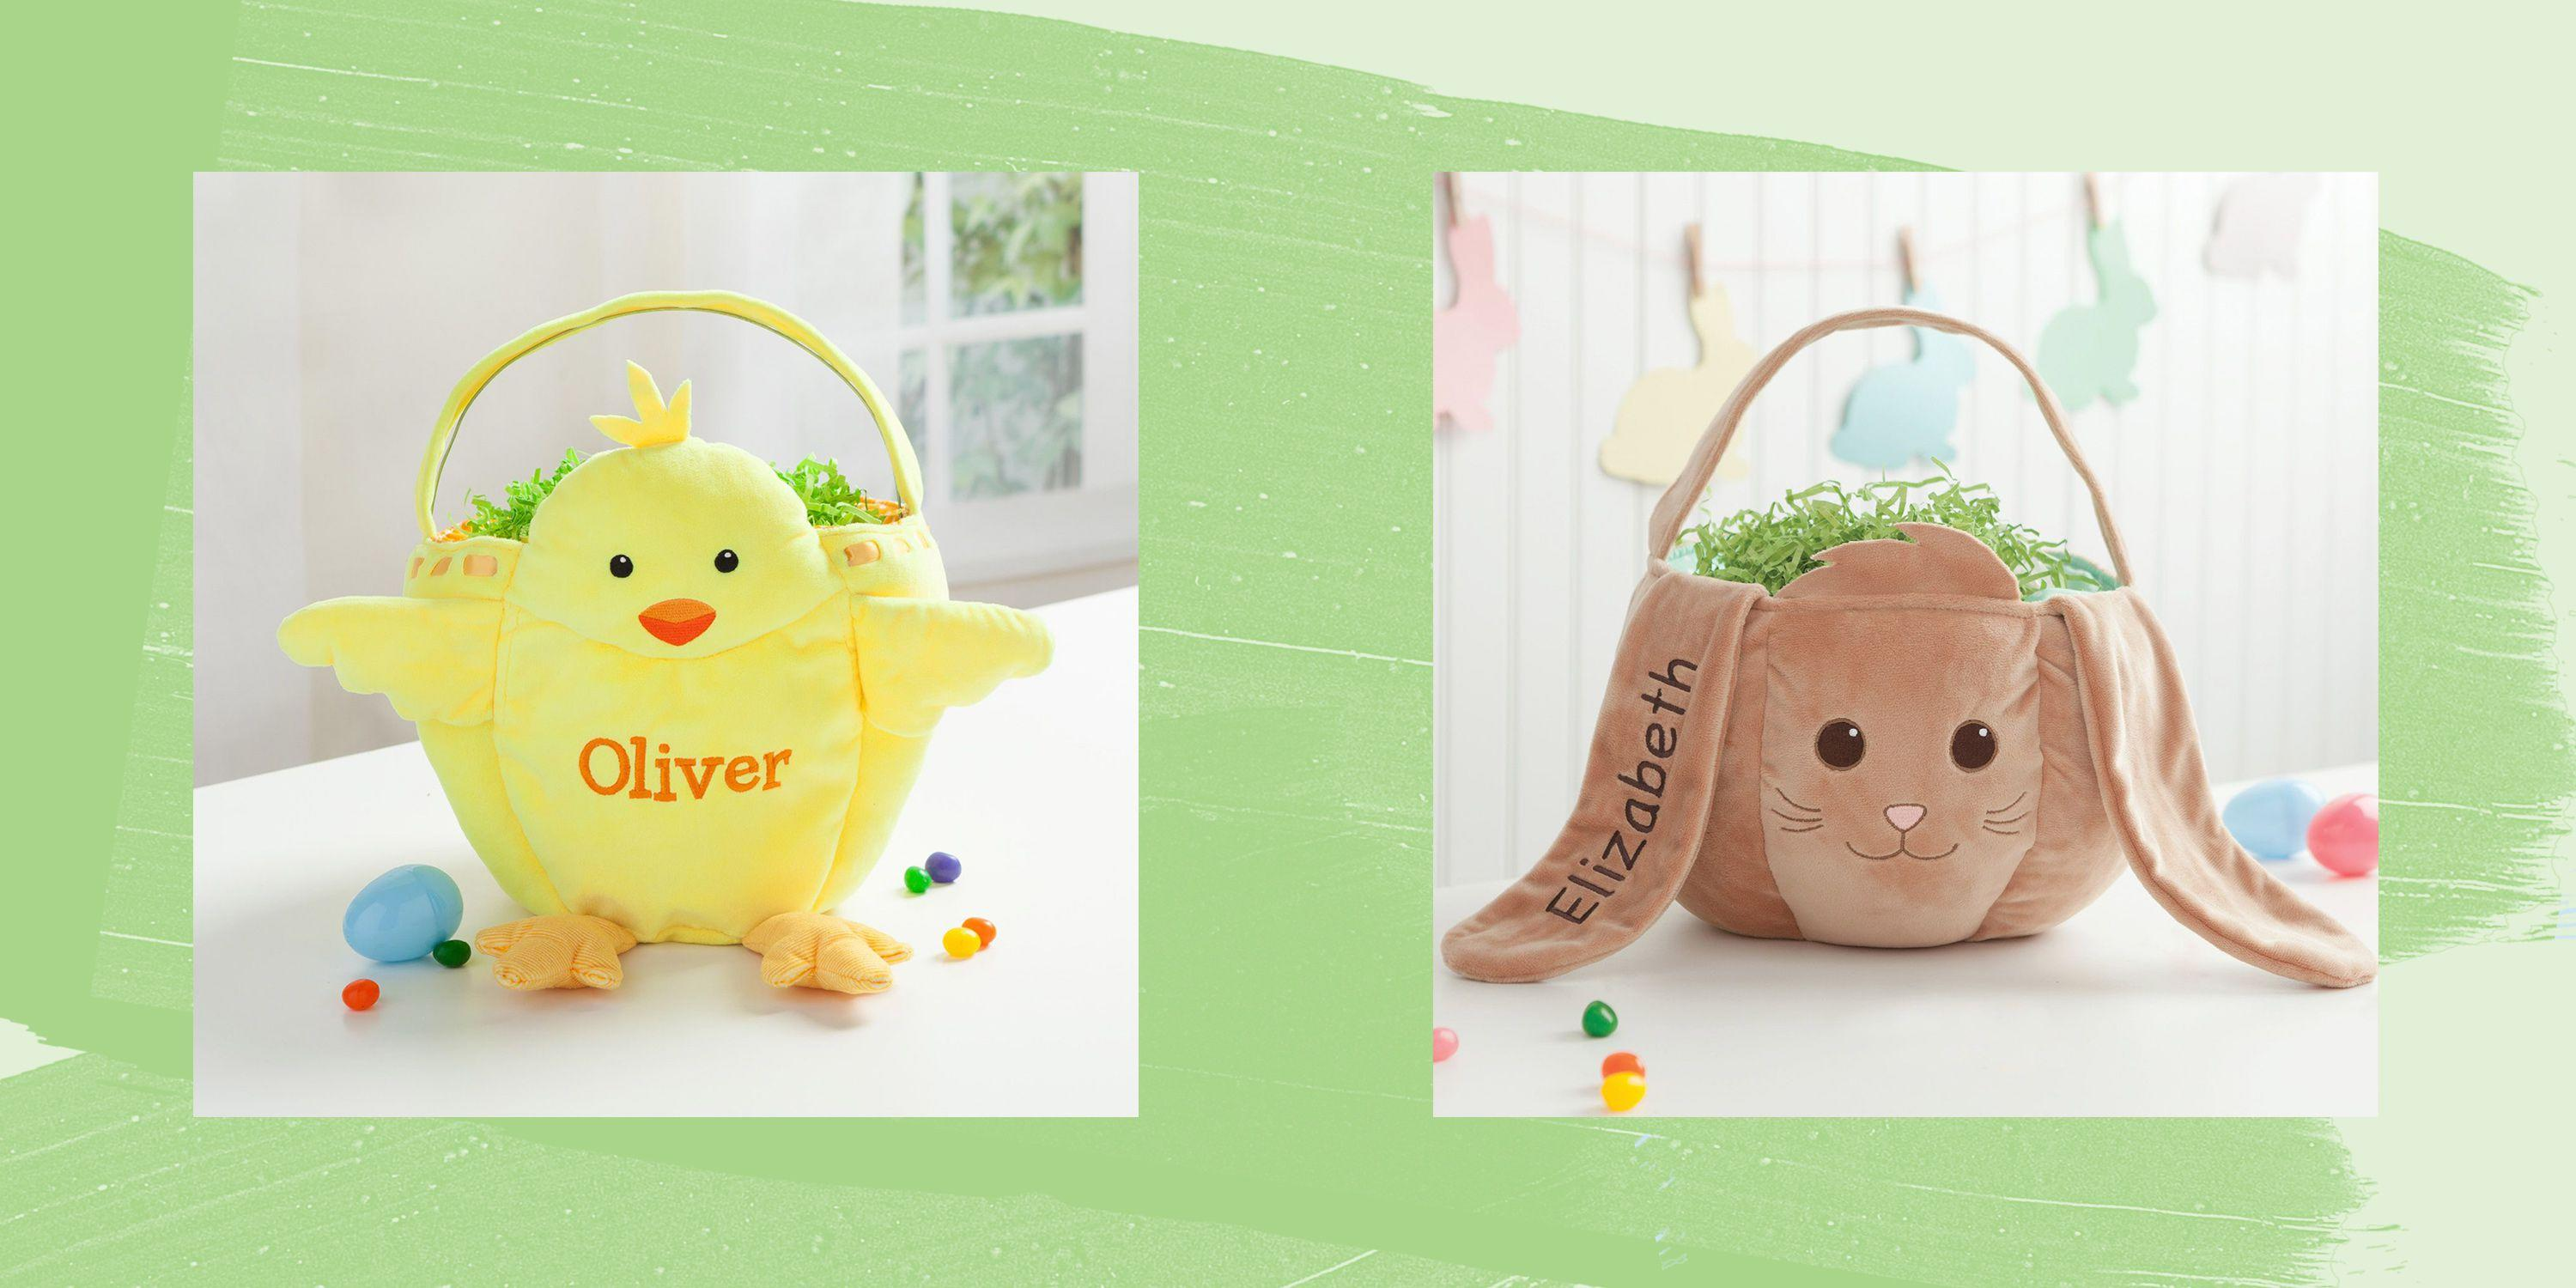 6749846f3 Celebrate Your Child's First Easter With These Baby-Friendly Baskets